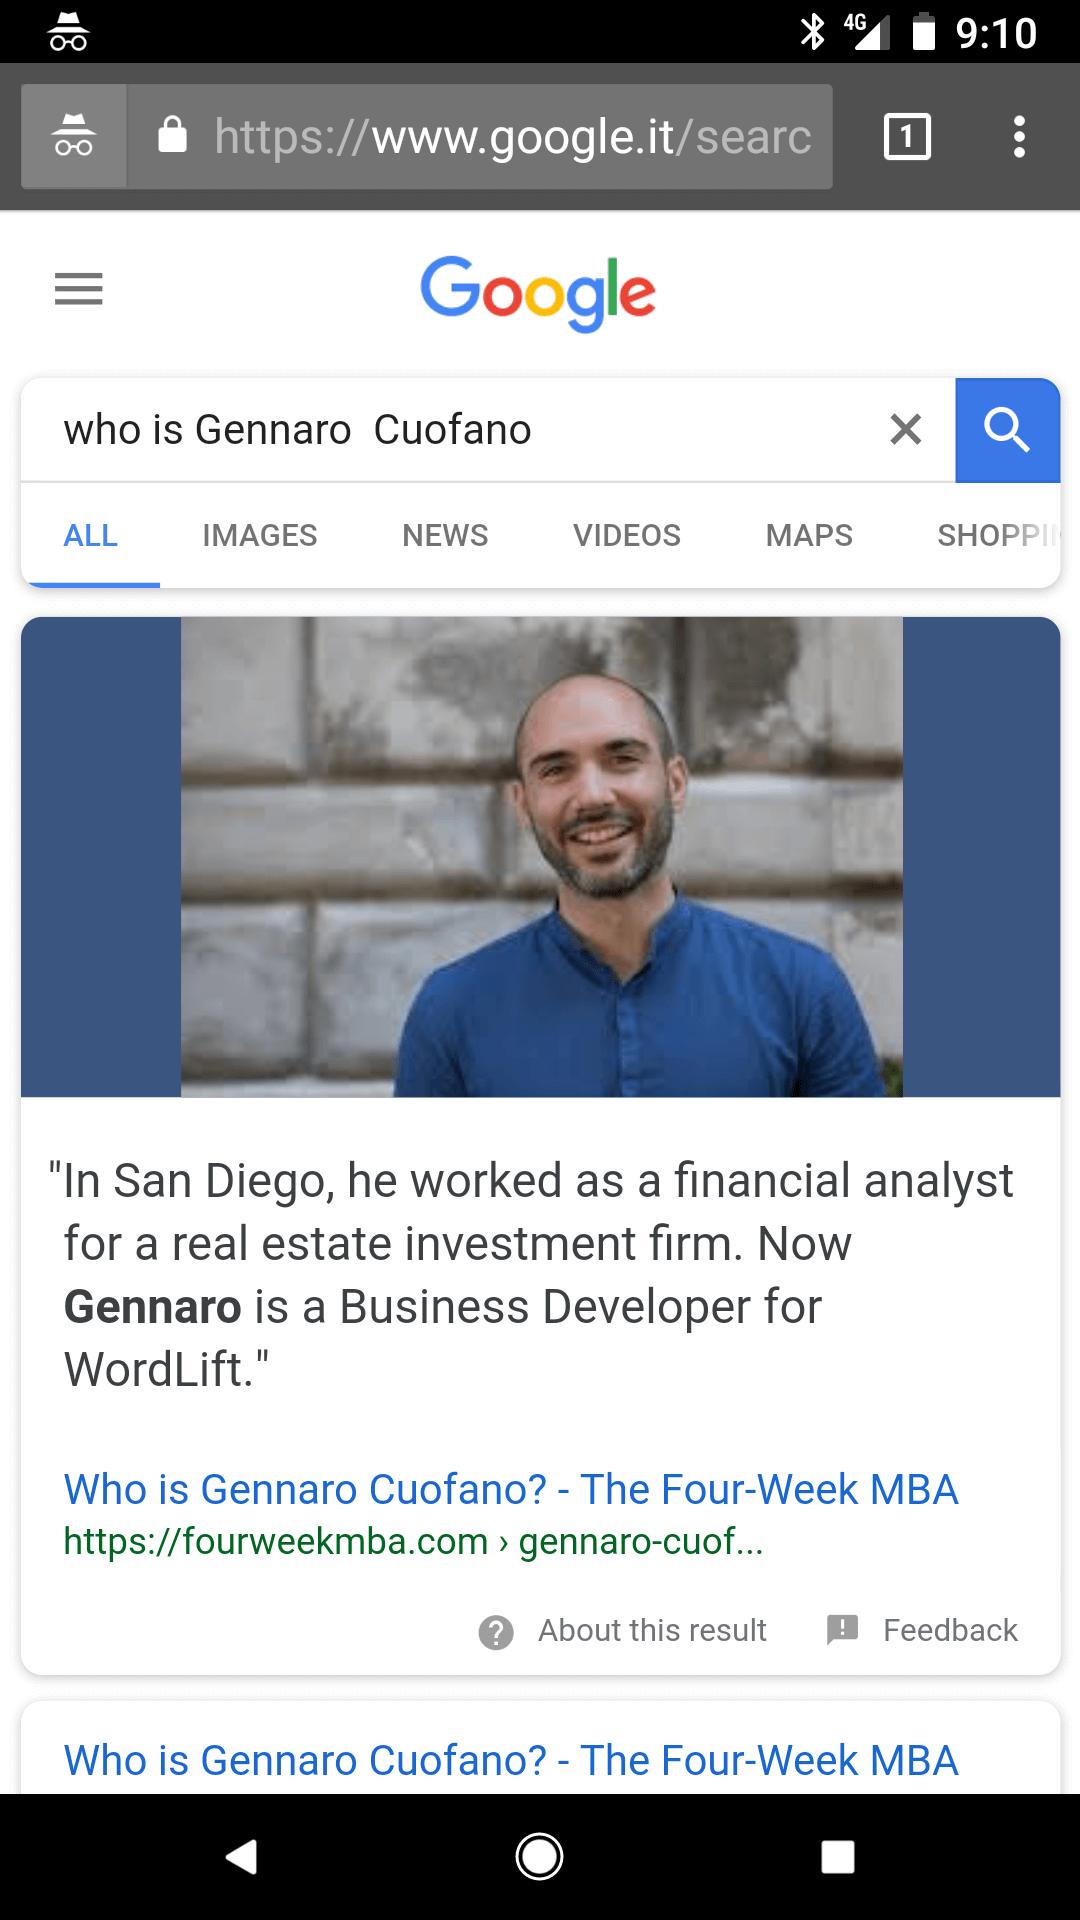 gennaro-cuofano-featured-snippet